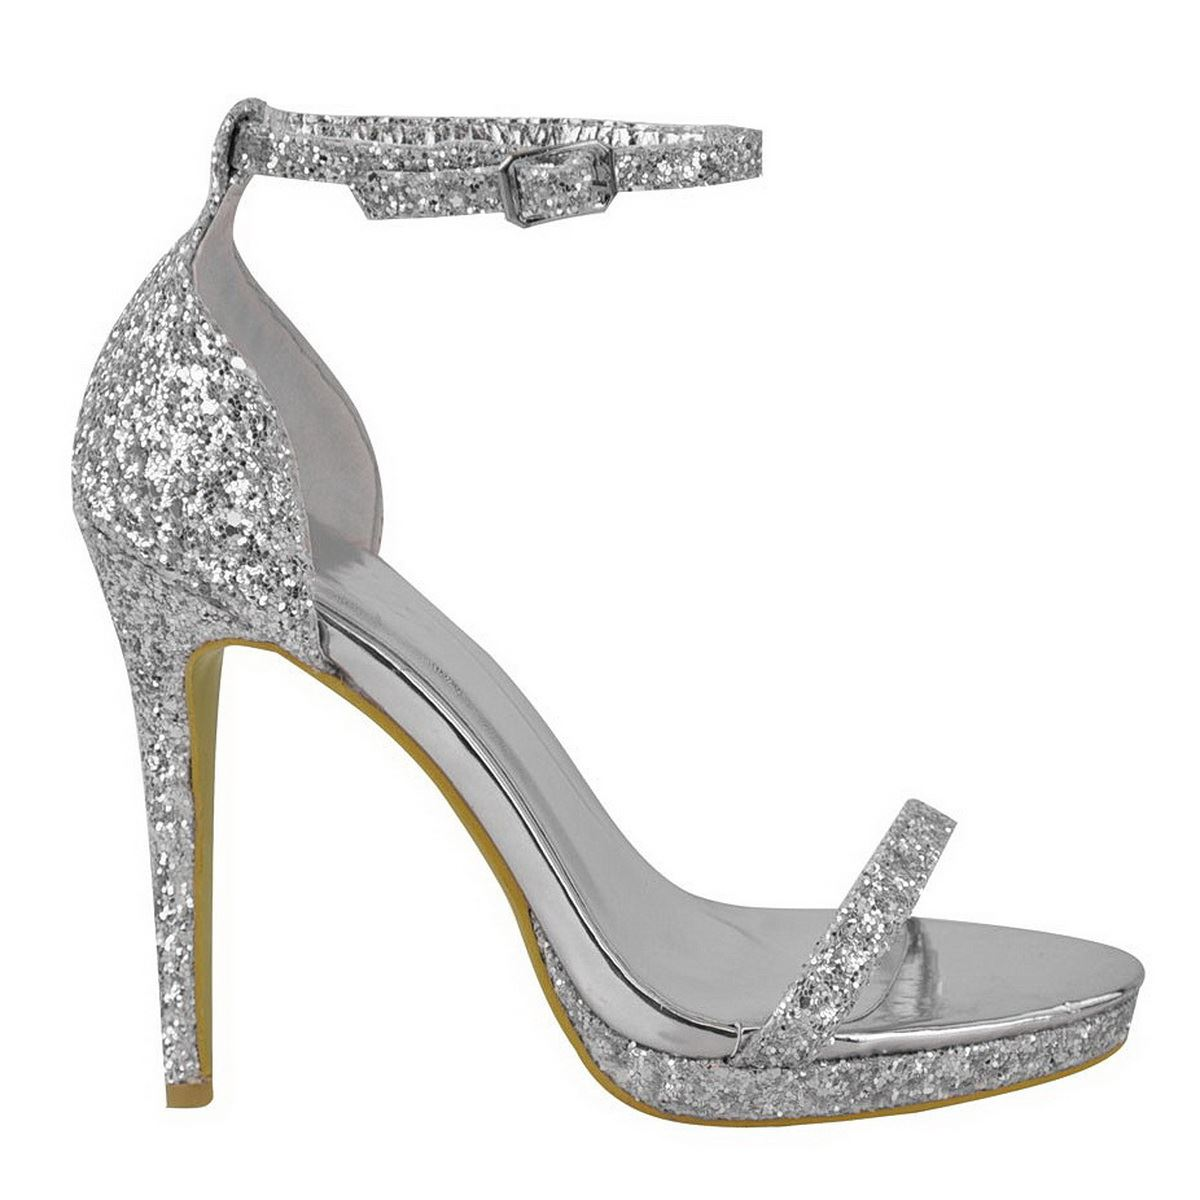 NEW LADIES WOMENS SHINY GLITTER HIGH HEELS ANKLE STRAP PLATFORM PARTY SHOES SIZE